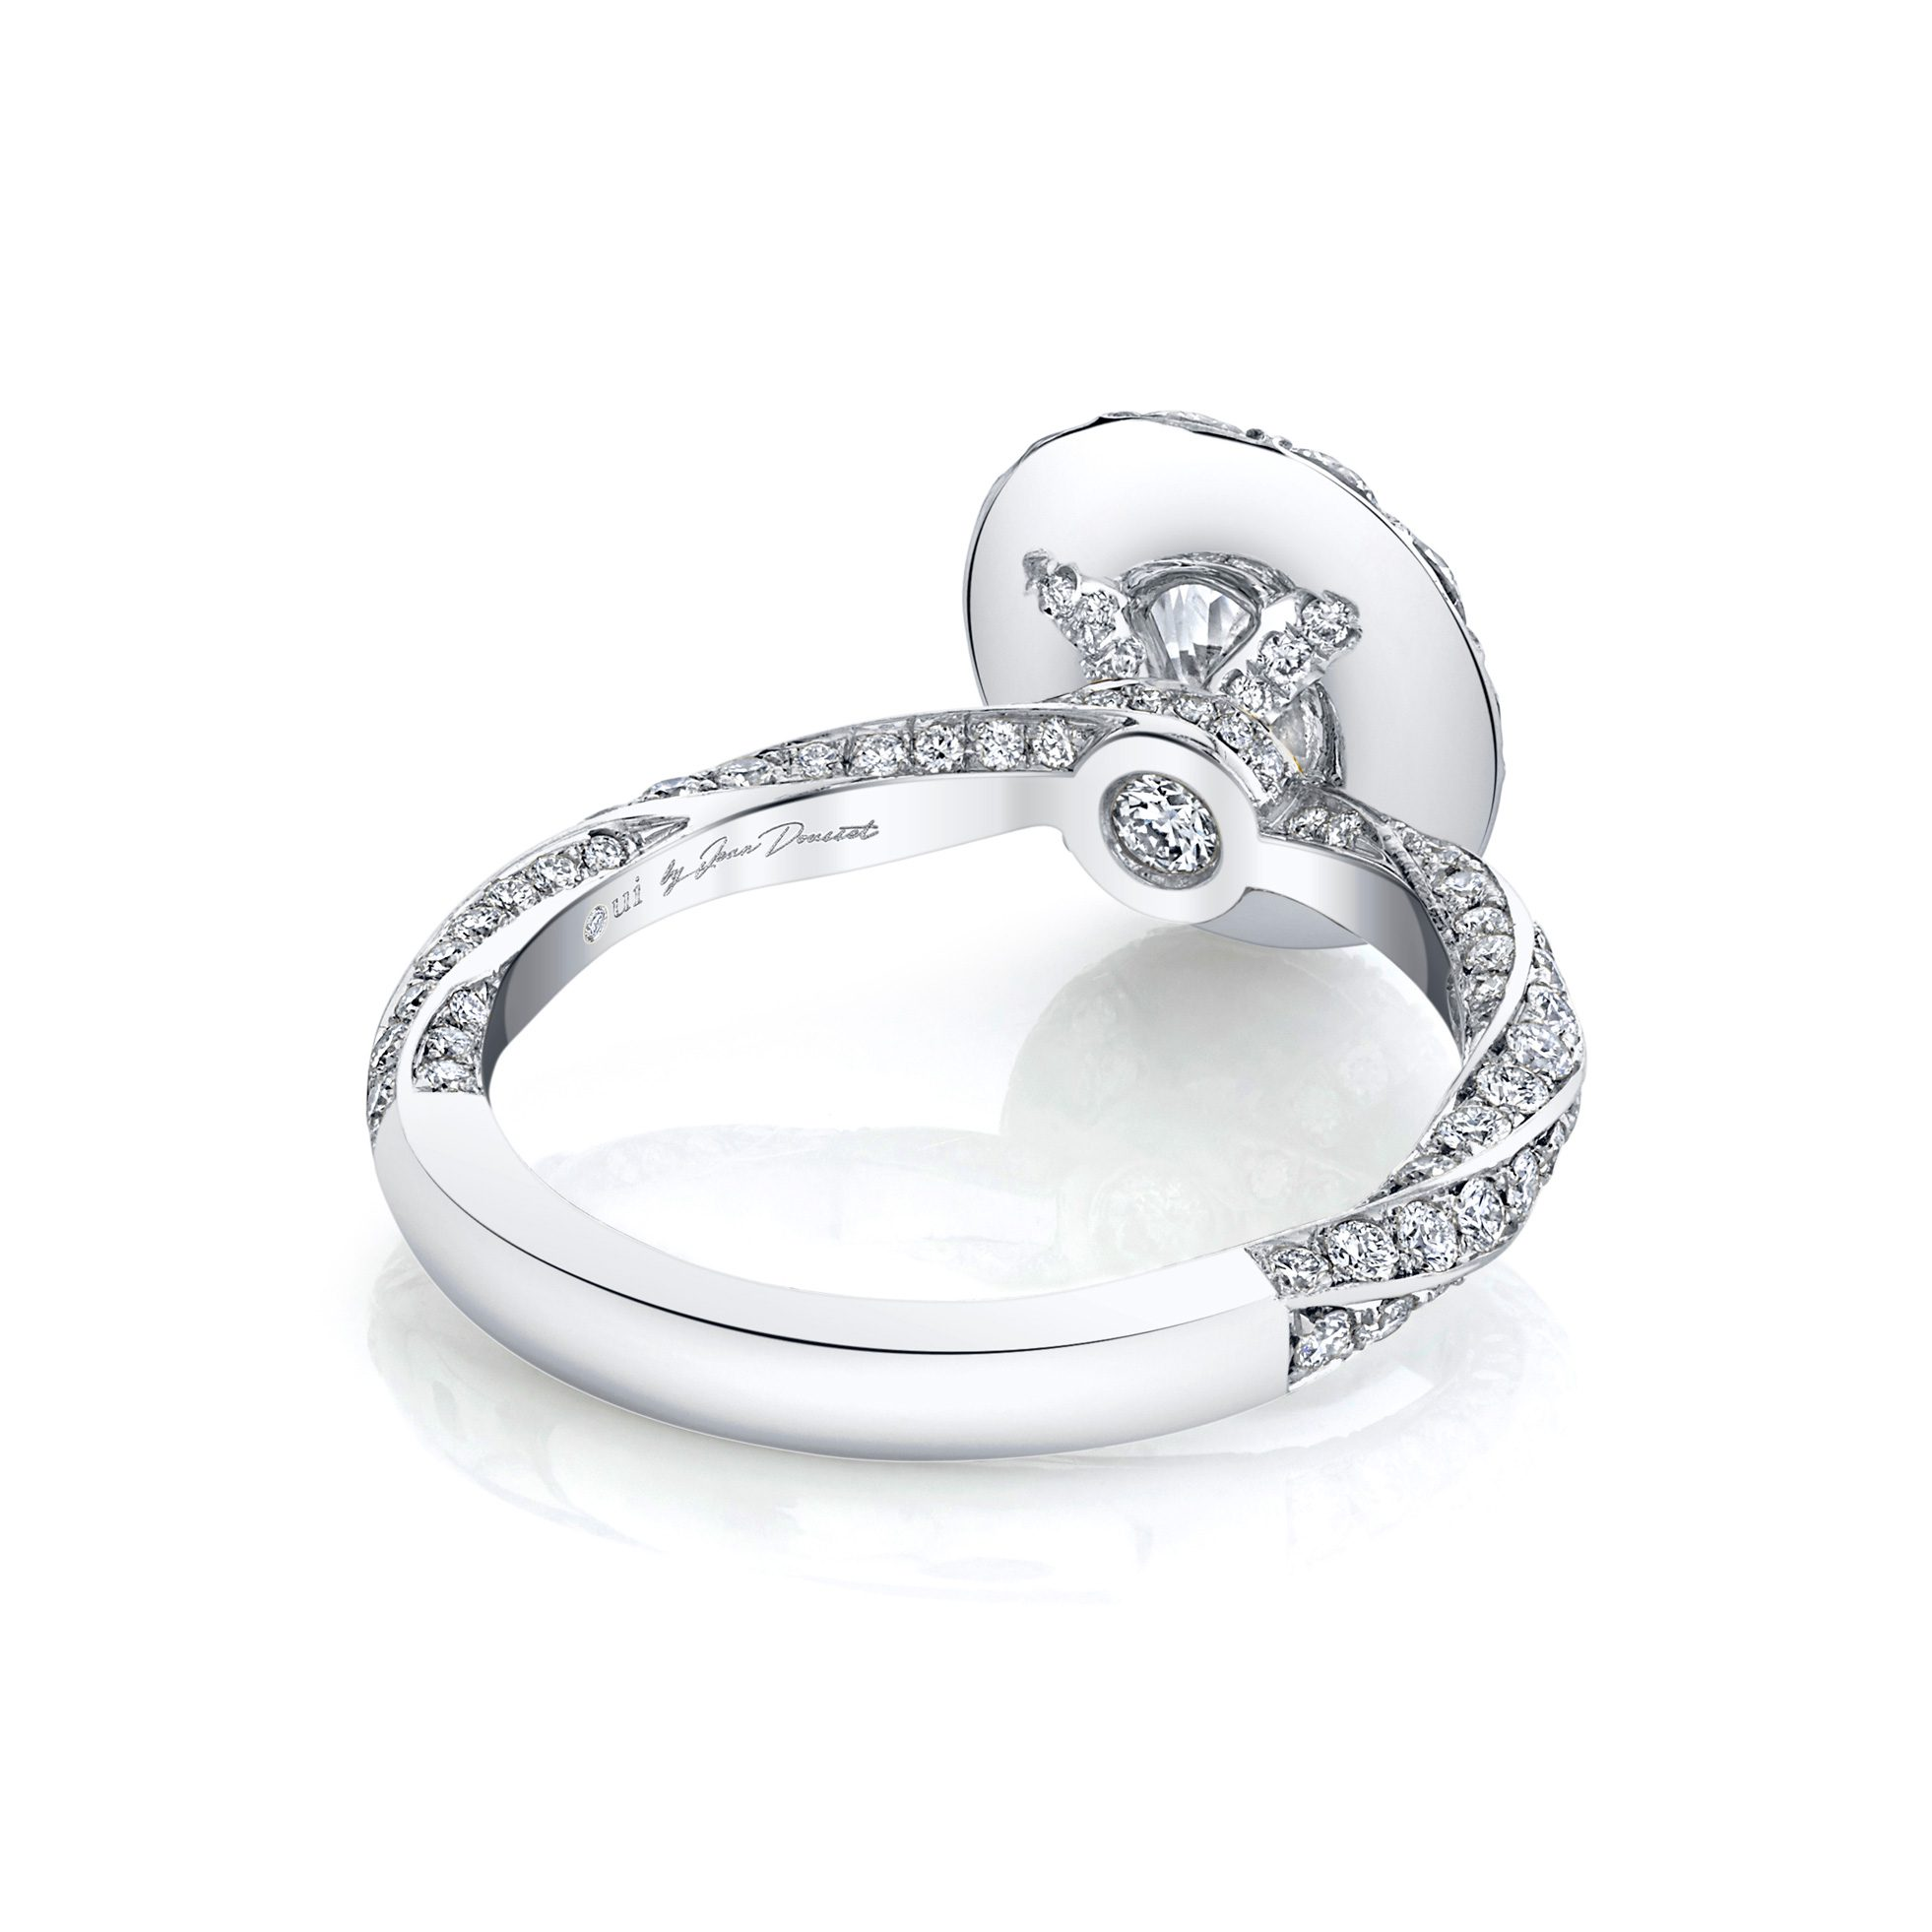 Camille Floating Oval Seamless Solitaire® Engagement Ring with diamond pavé in 18k White Gold Back View by Oui by Jean Dousset